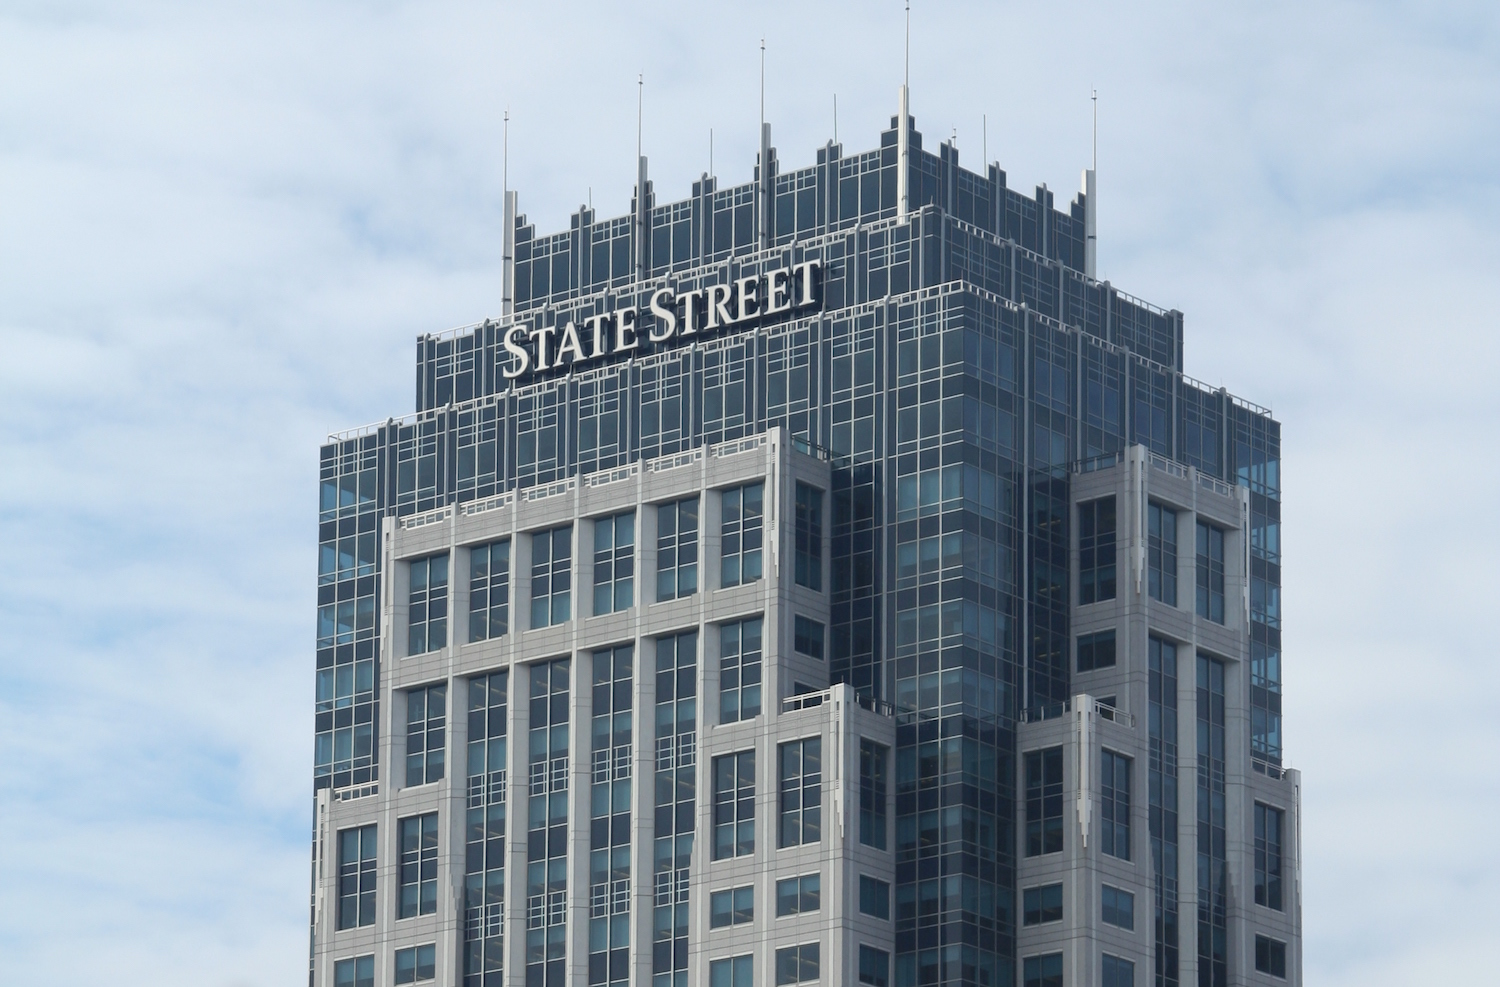 State Street headquarters